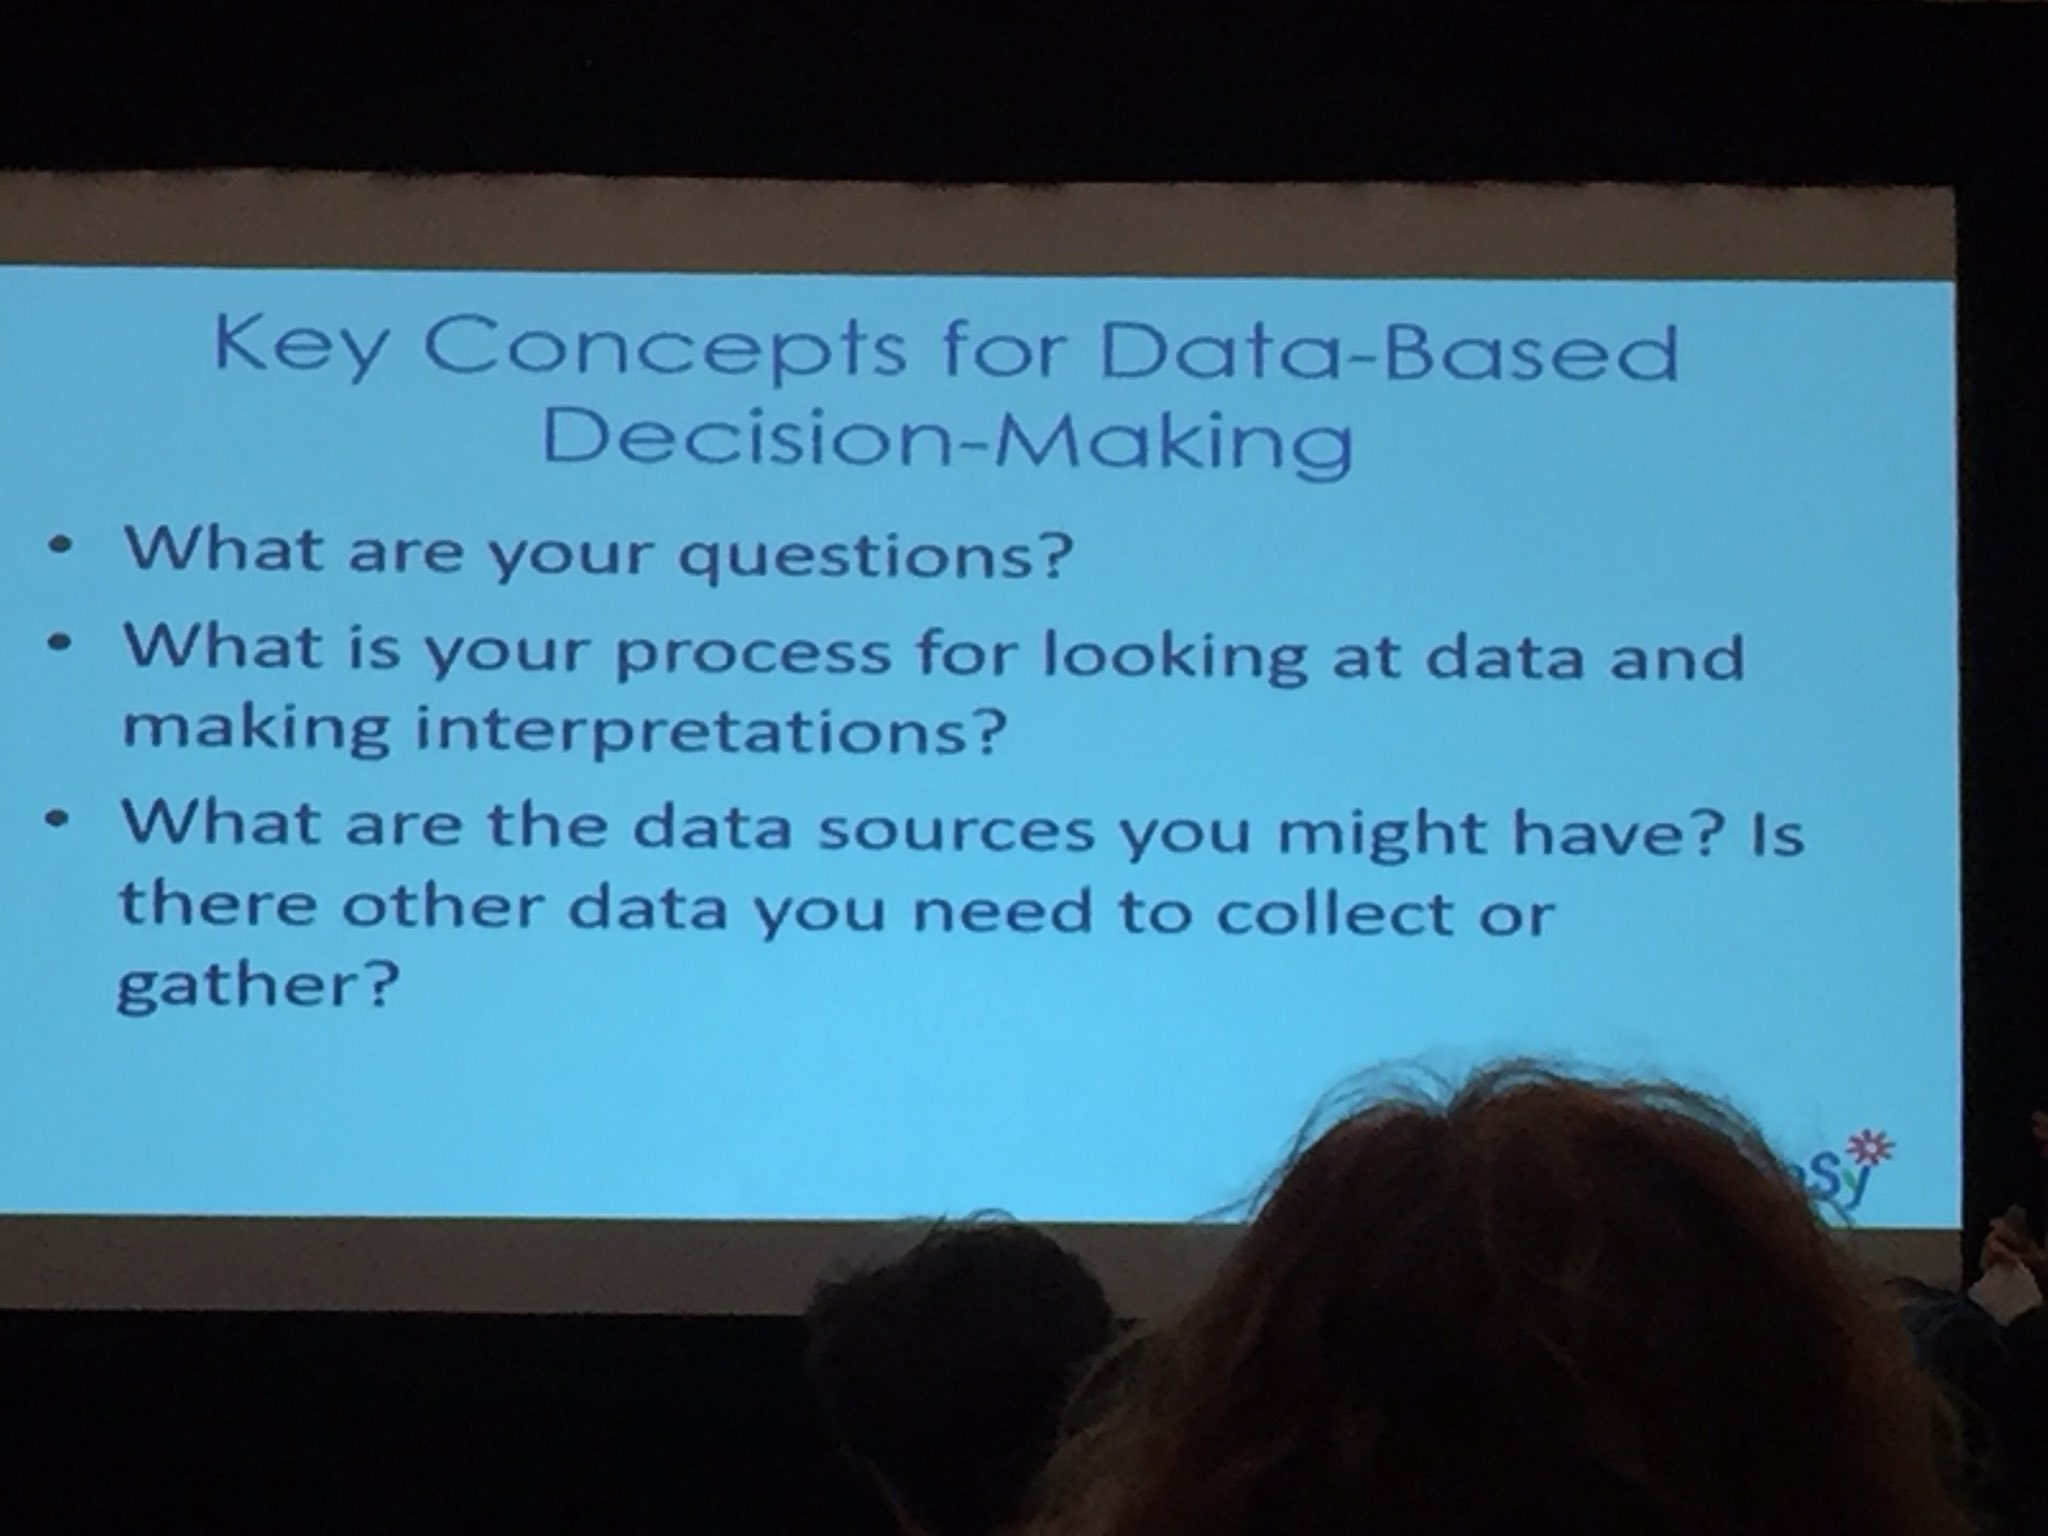 Data Driven Decisions-DaSy  #ECIDEA16 #CEDSCanHelp with free tools https://t.co/2eX2WjMT8N https://t.co/FrhDpKTYMp